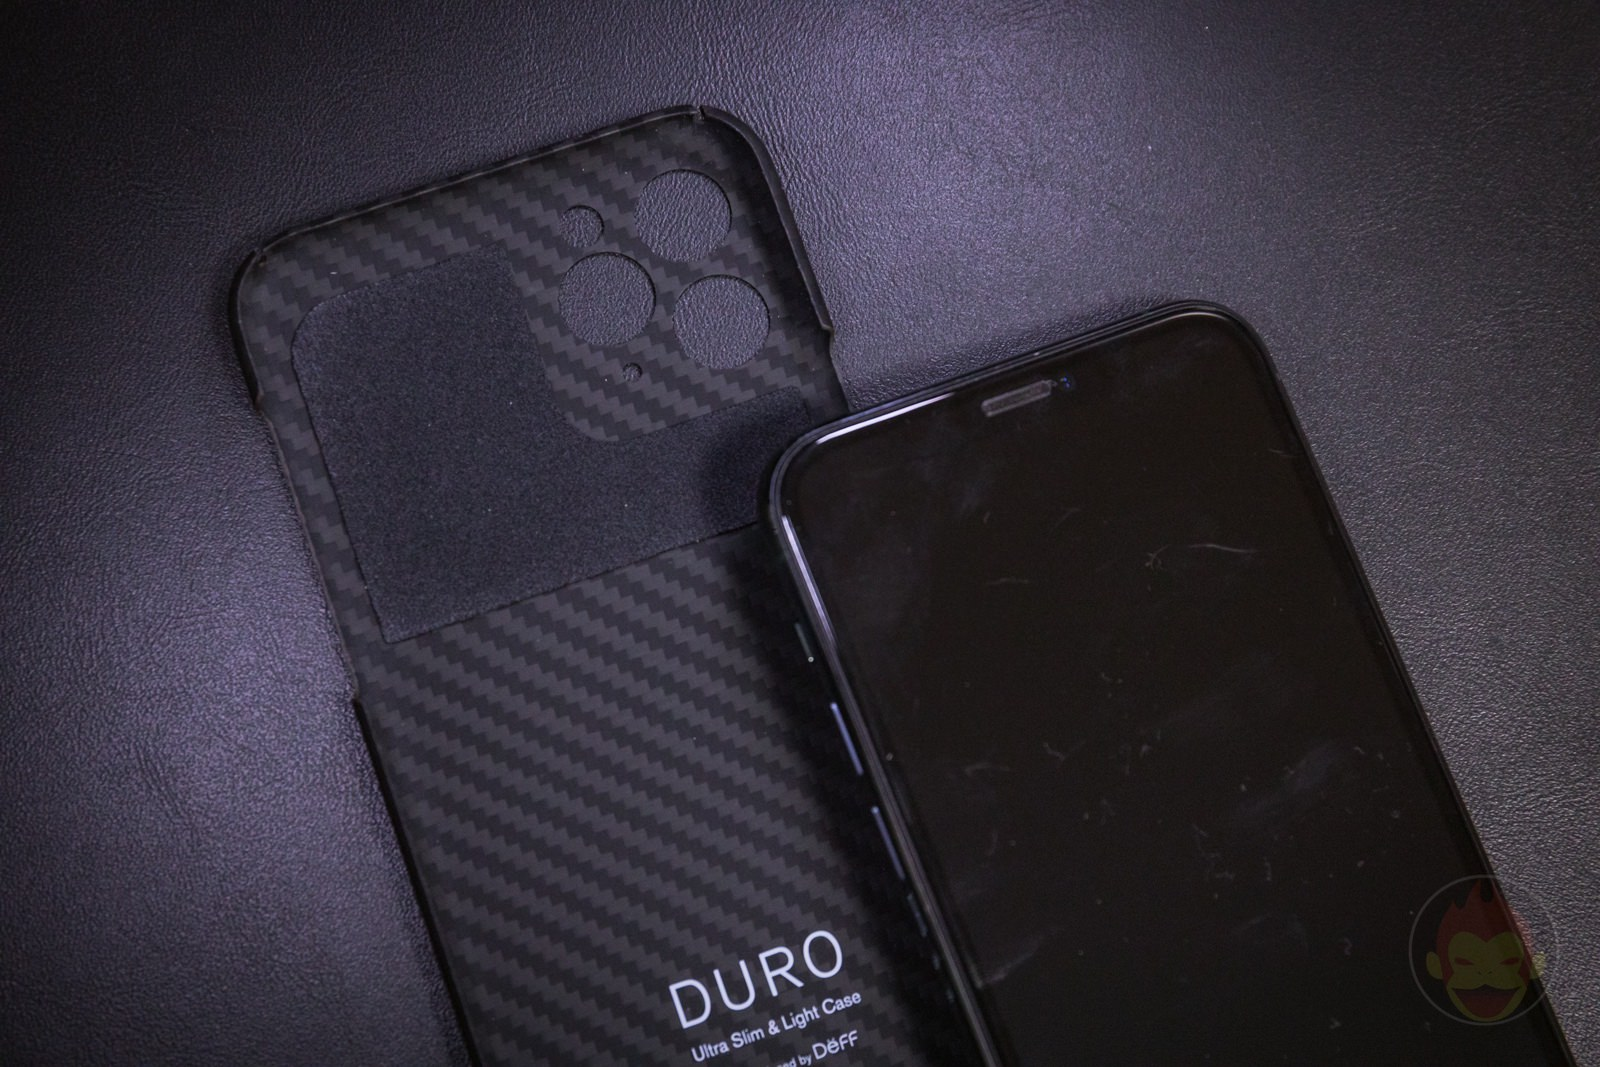 UltraSlim and LightCaseDURO iPhone Case Review 14